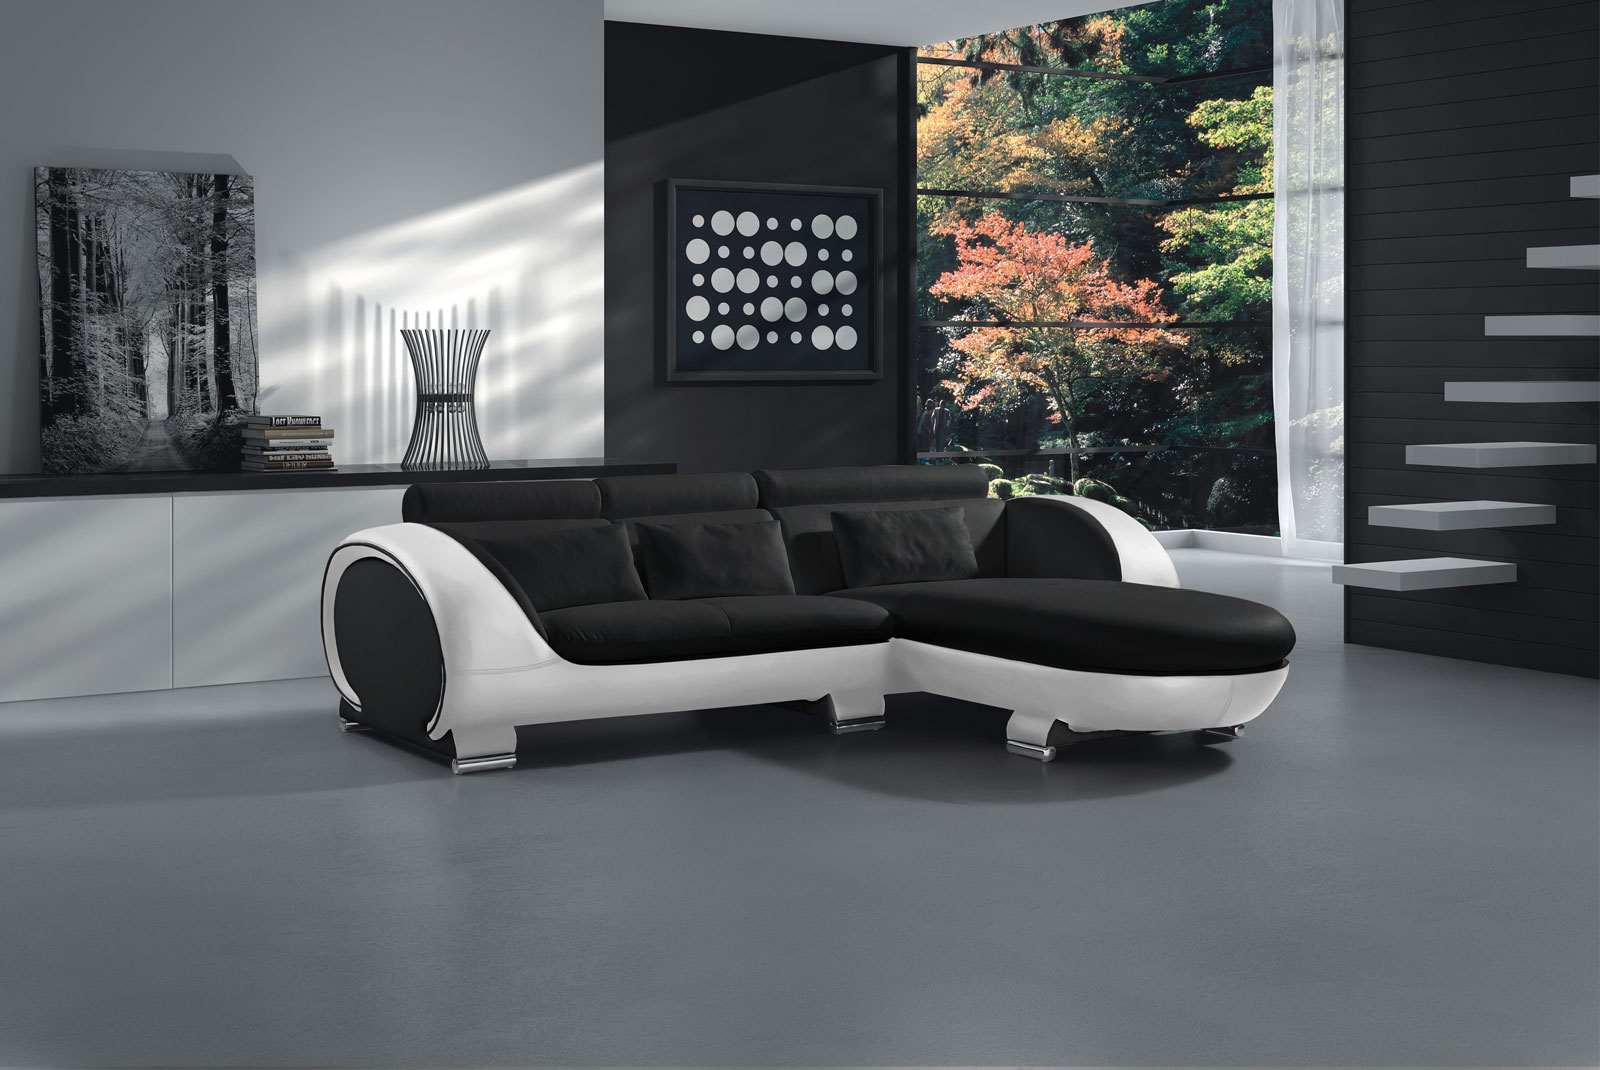 sam sofa schwarz wei vigo combi 1 couch 242 x 181 cm auf. Black Bedroom Furniture Sets. Home Design Ideas